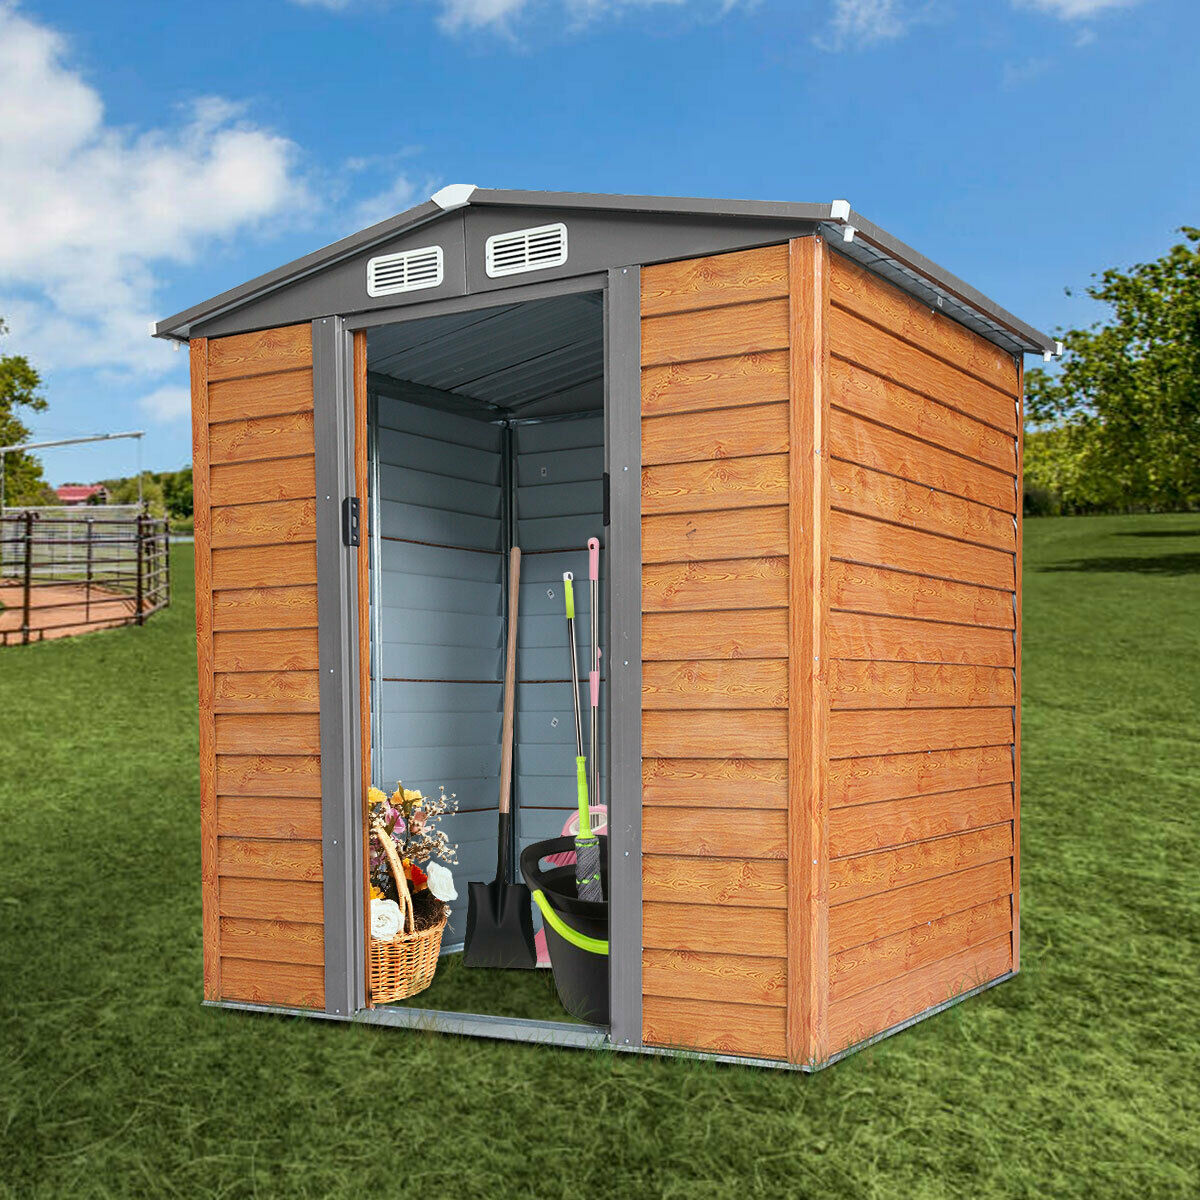 5 x 6FT Outdoor Storage Shed Tool House Box Steel Utility Backyard Garden Lawn